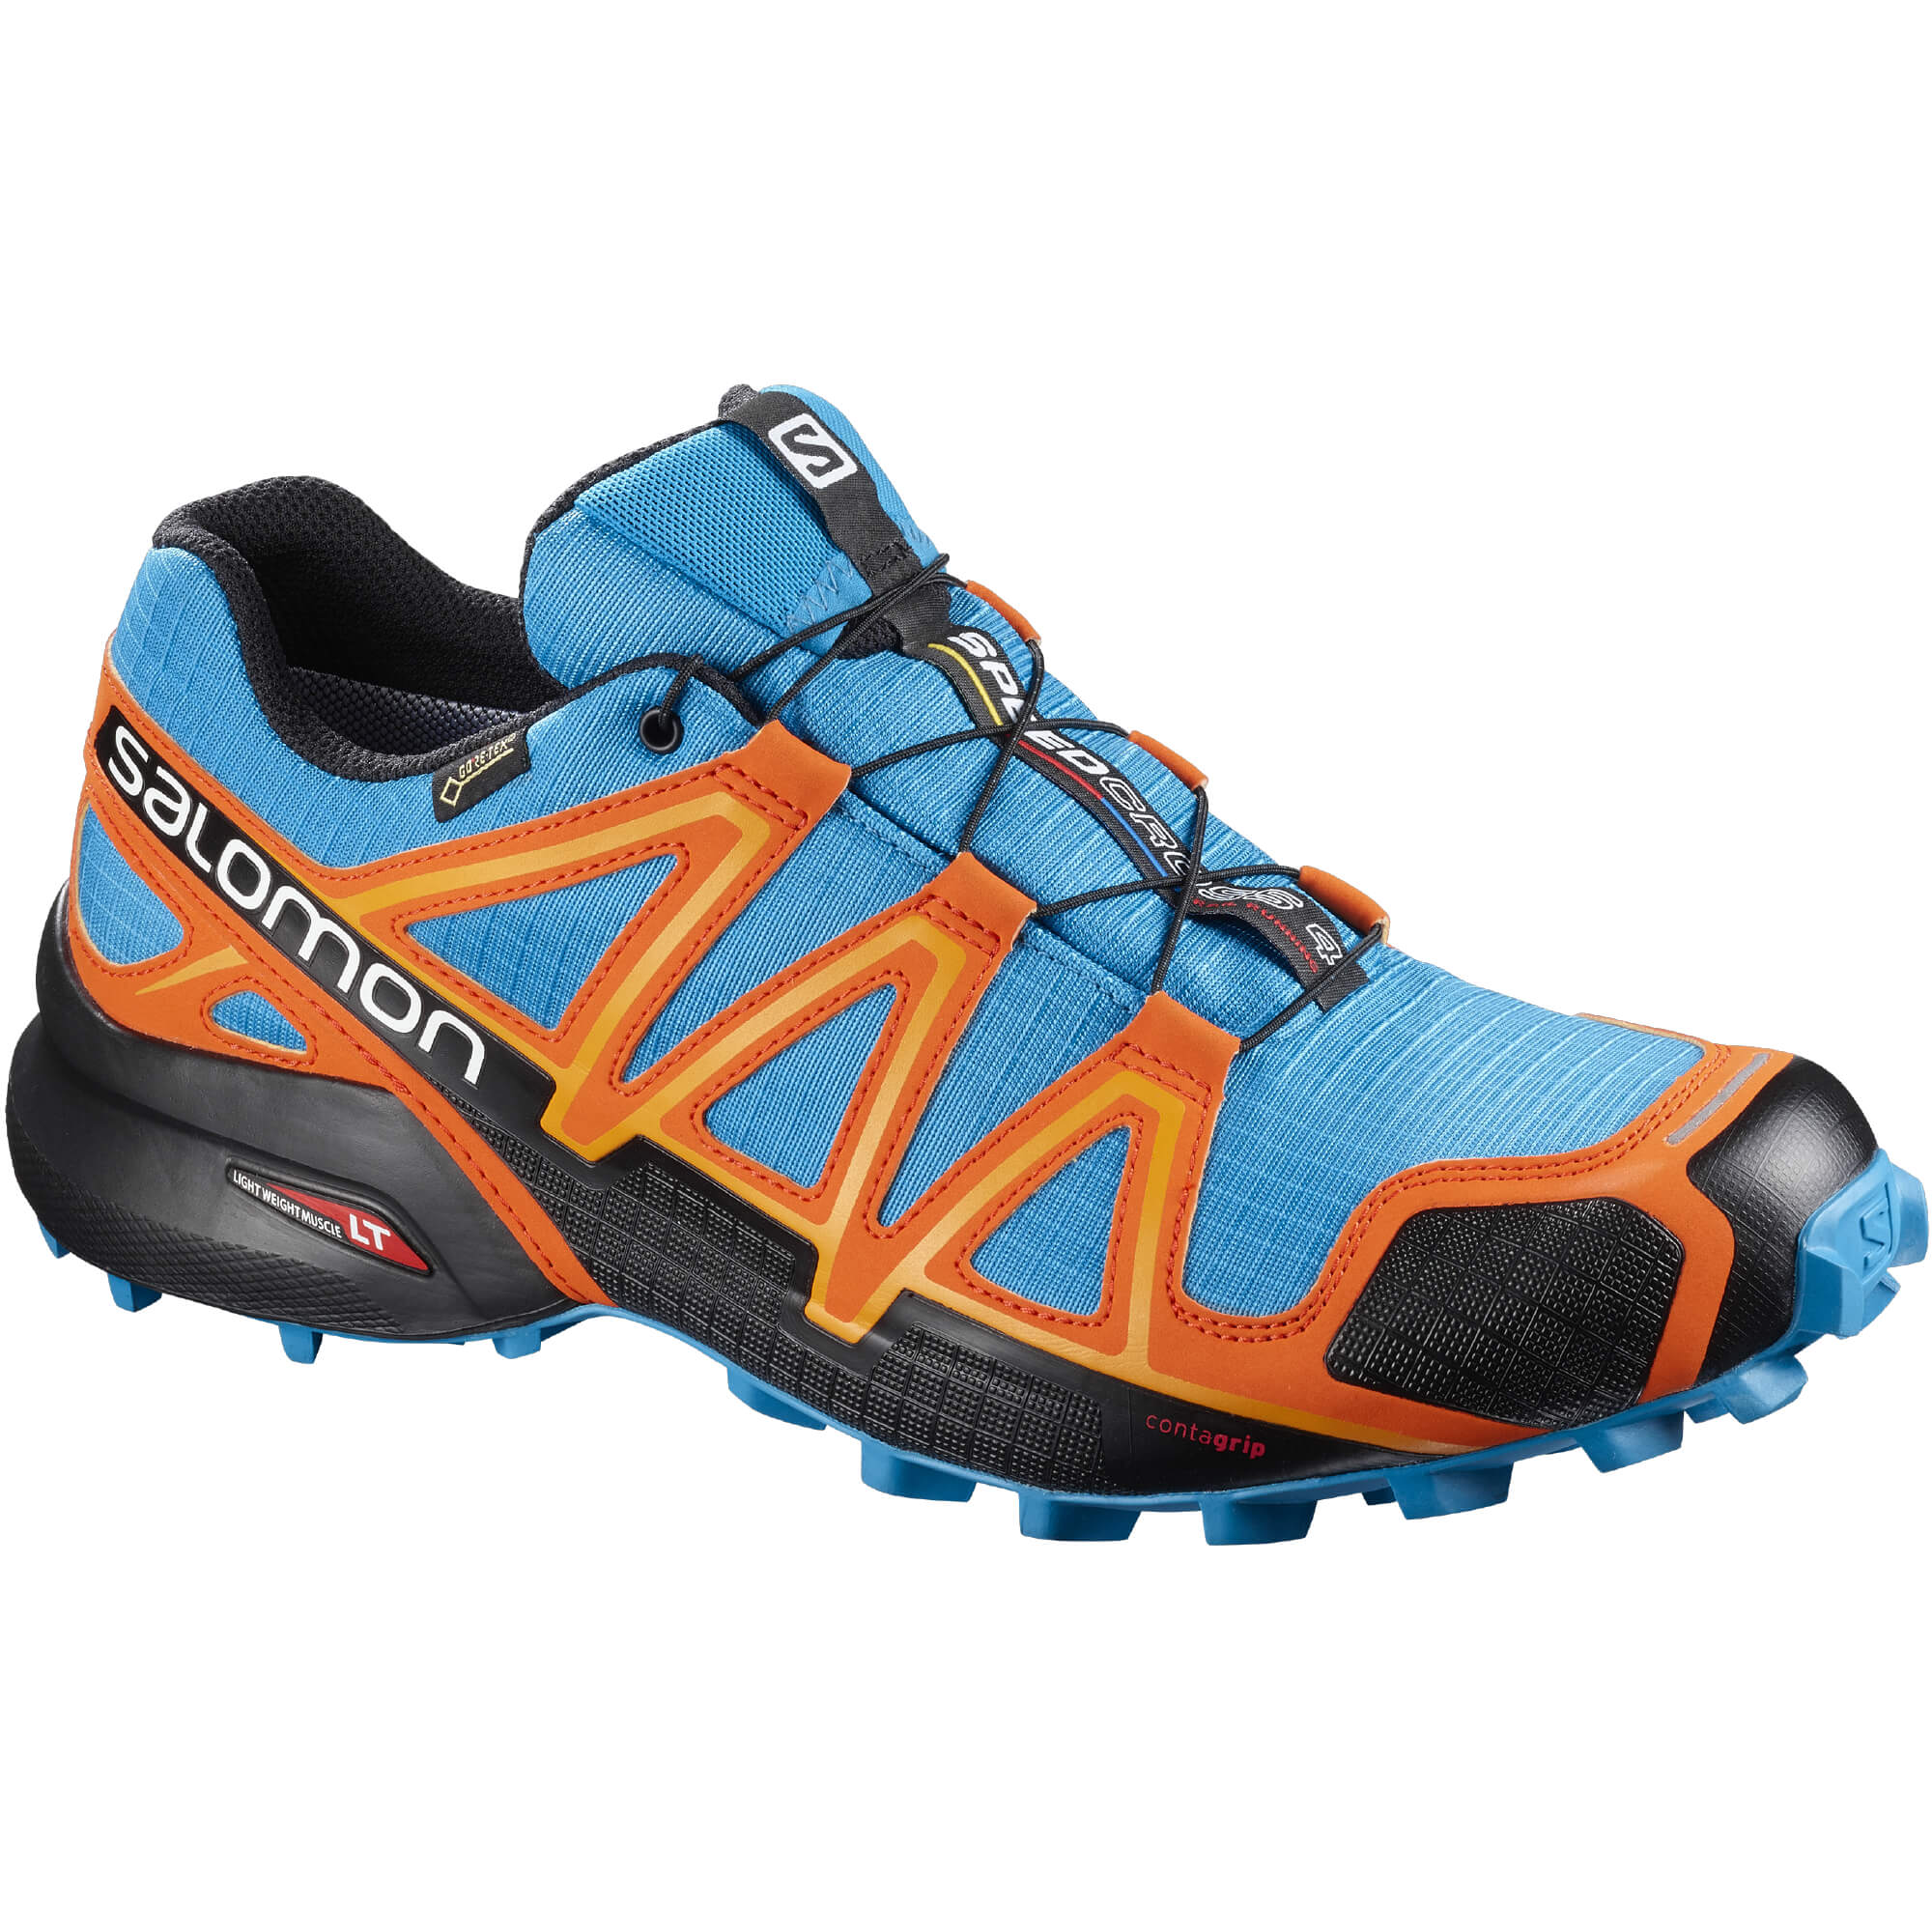 Salomon Speedcross 4 GTX, vel. 43 1/3